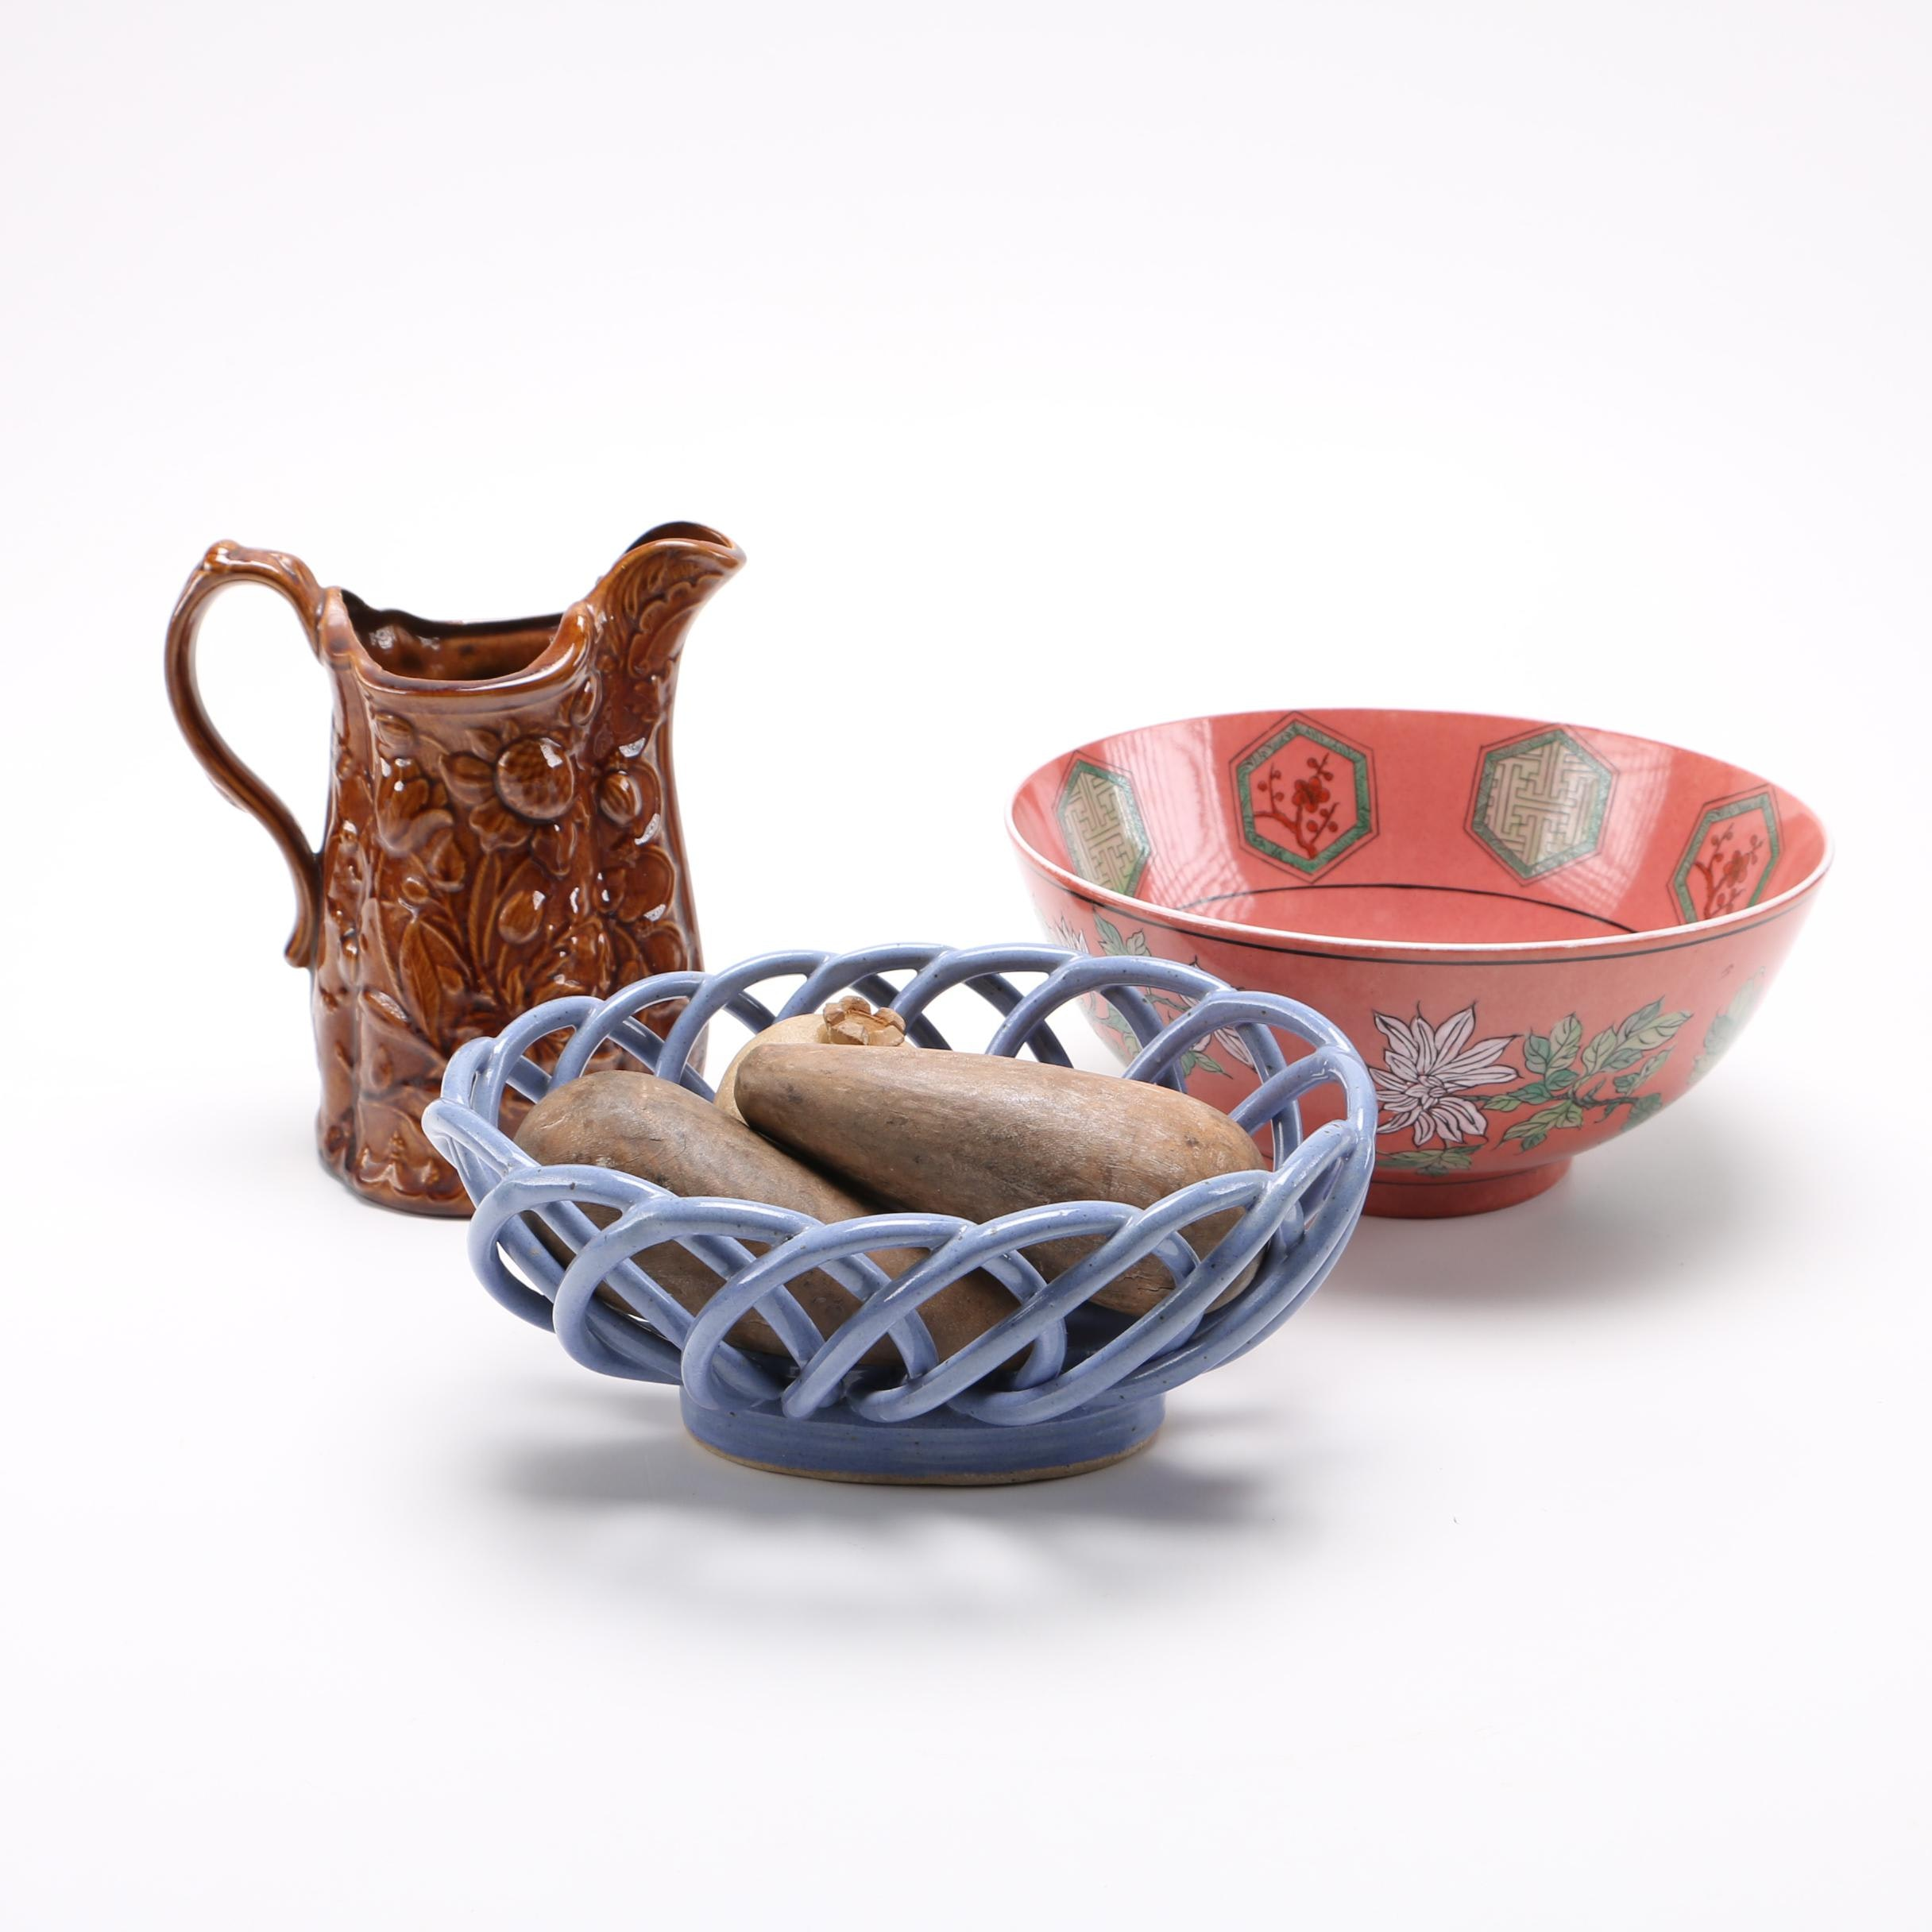 Overjoy Ceramic Bowl and Brown Glazed Pitcher